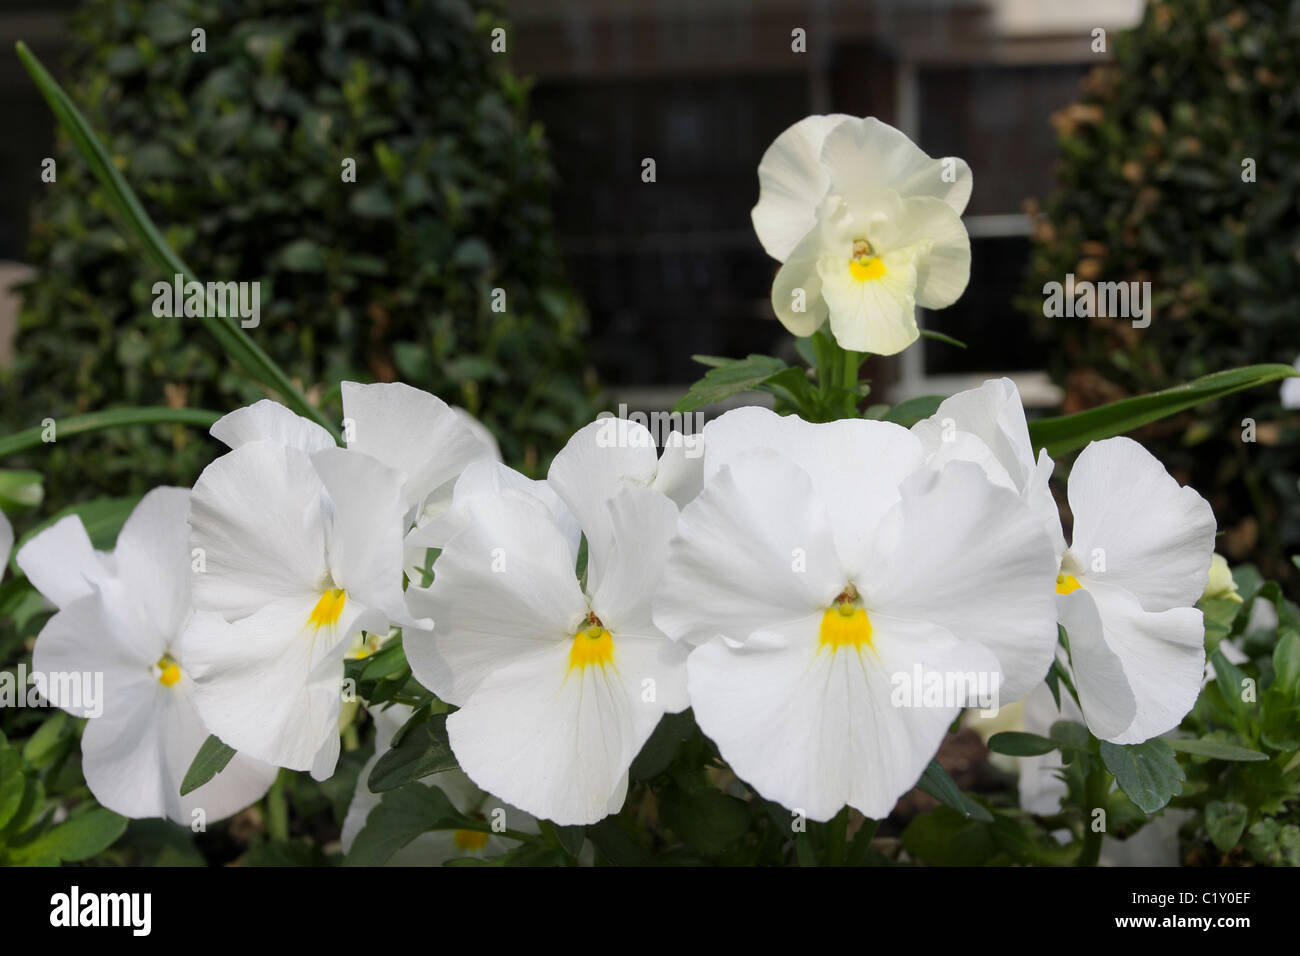 White Pansies viola wittrockiana, viewed here in early spring sunshine in St Johns Wood north west London. - Stock Image